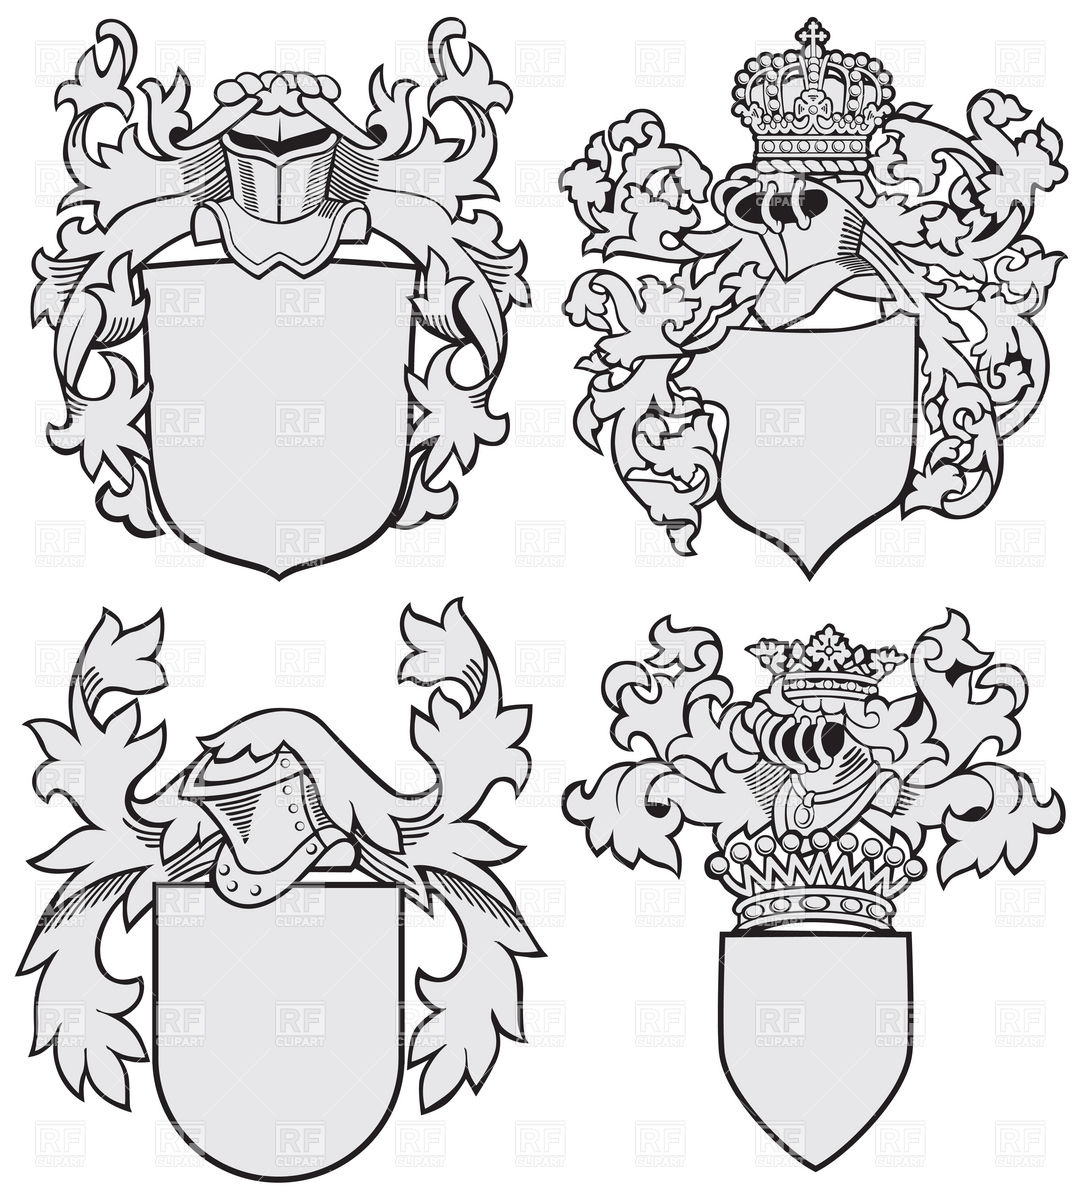 1083x1200 Medieval Coats Of Arms Blank Templates Vector Image Vector